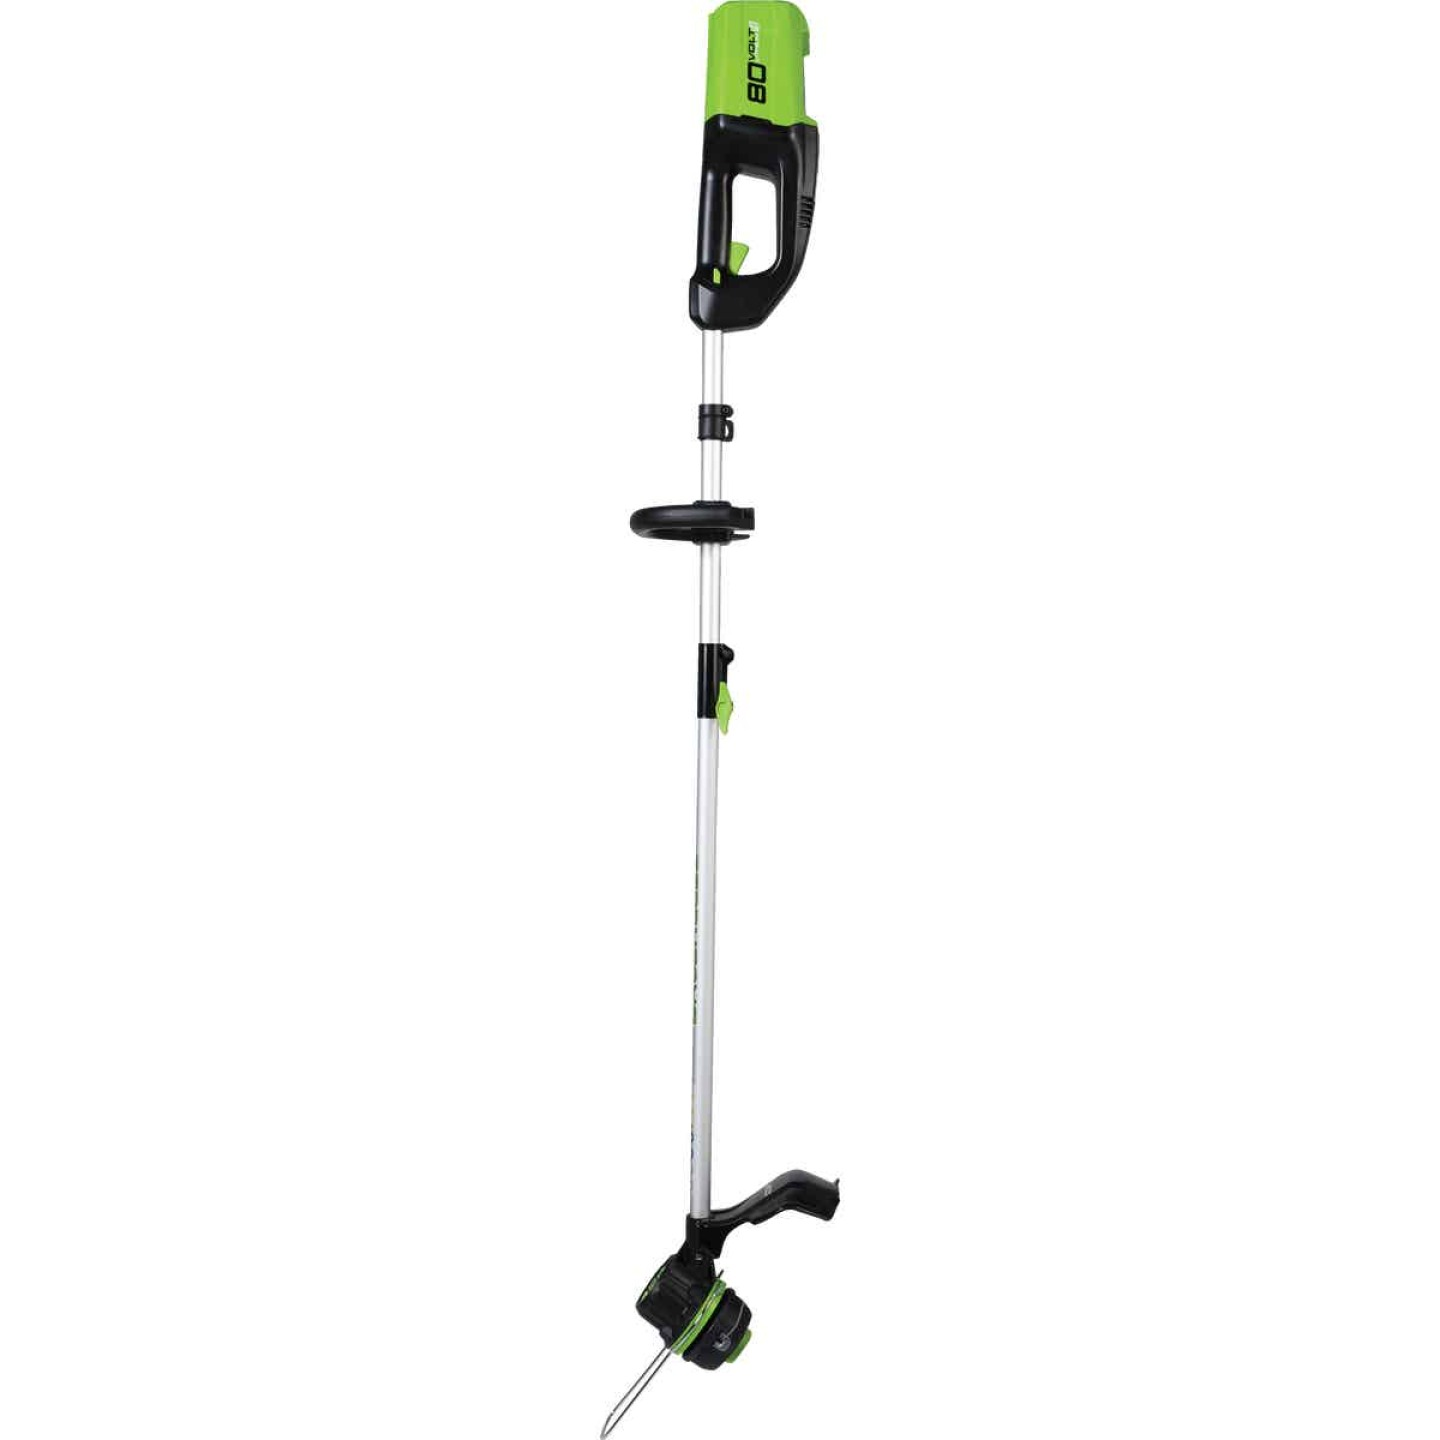 Greenworks Pro 80V 16 In. DigiPro Lithium Ion Straight Cordless String Trimmer Image 2